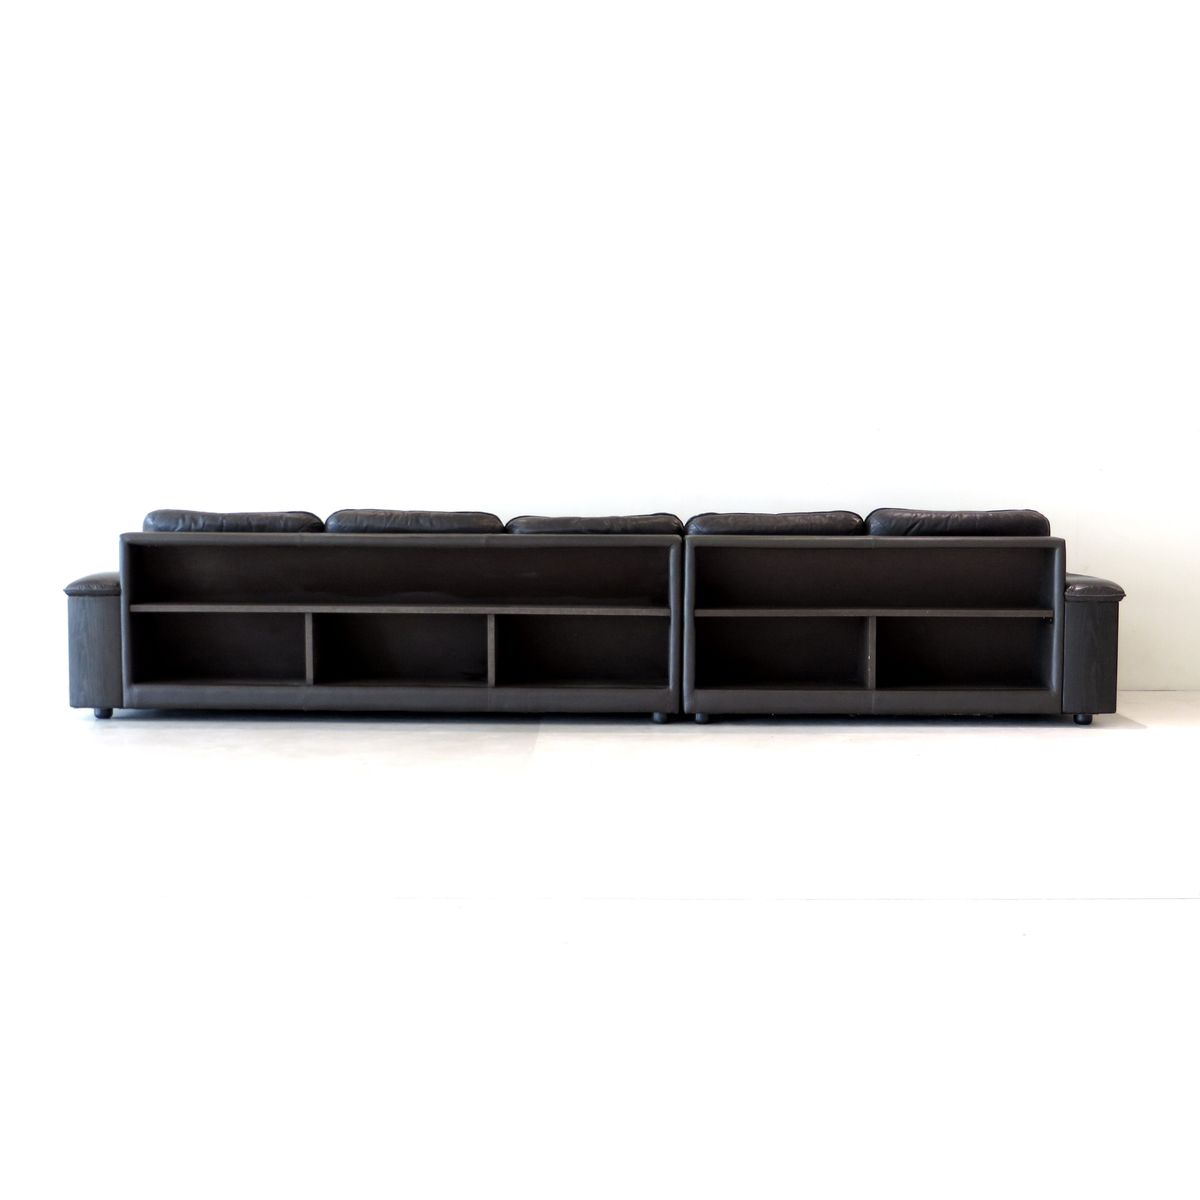 5 Seater Leather Sofa with Built In Bookcase and Ottoman